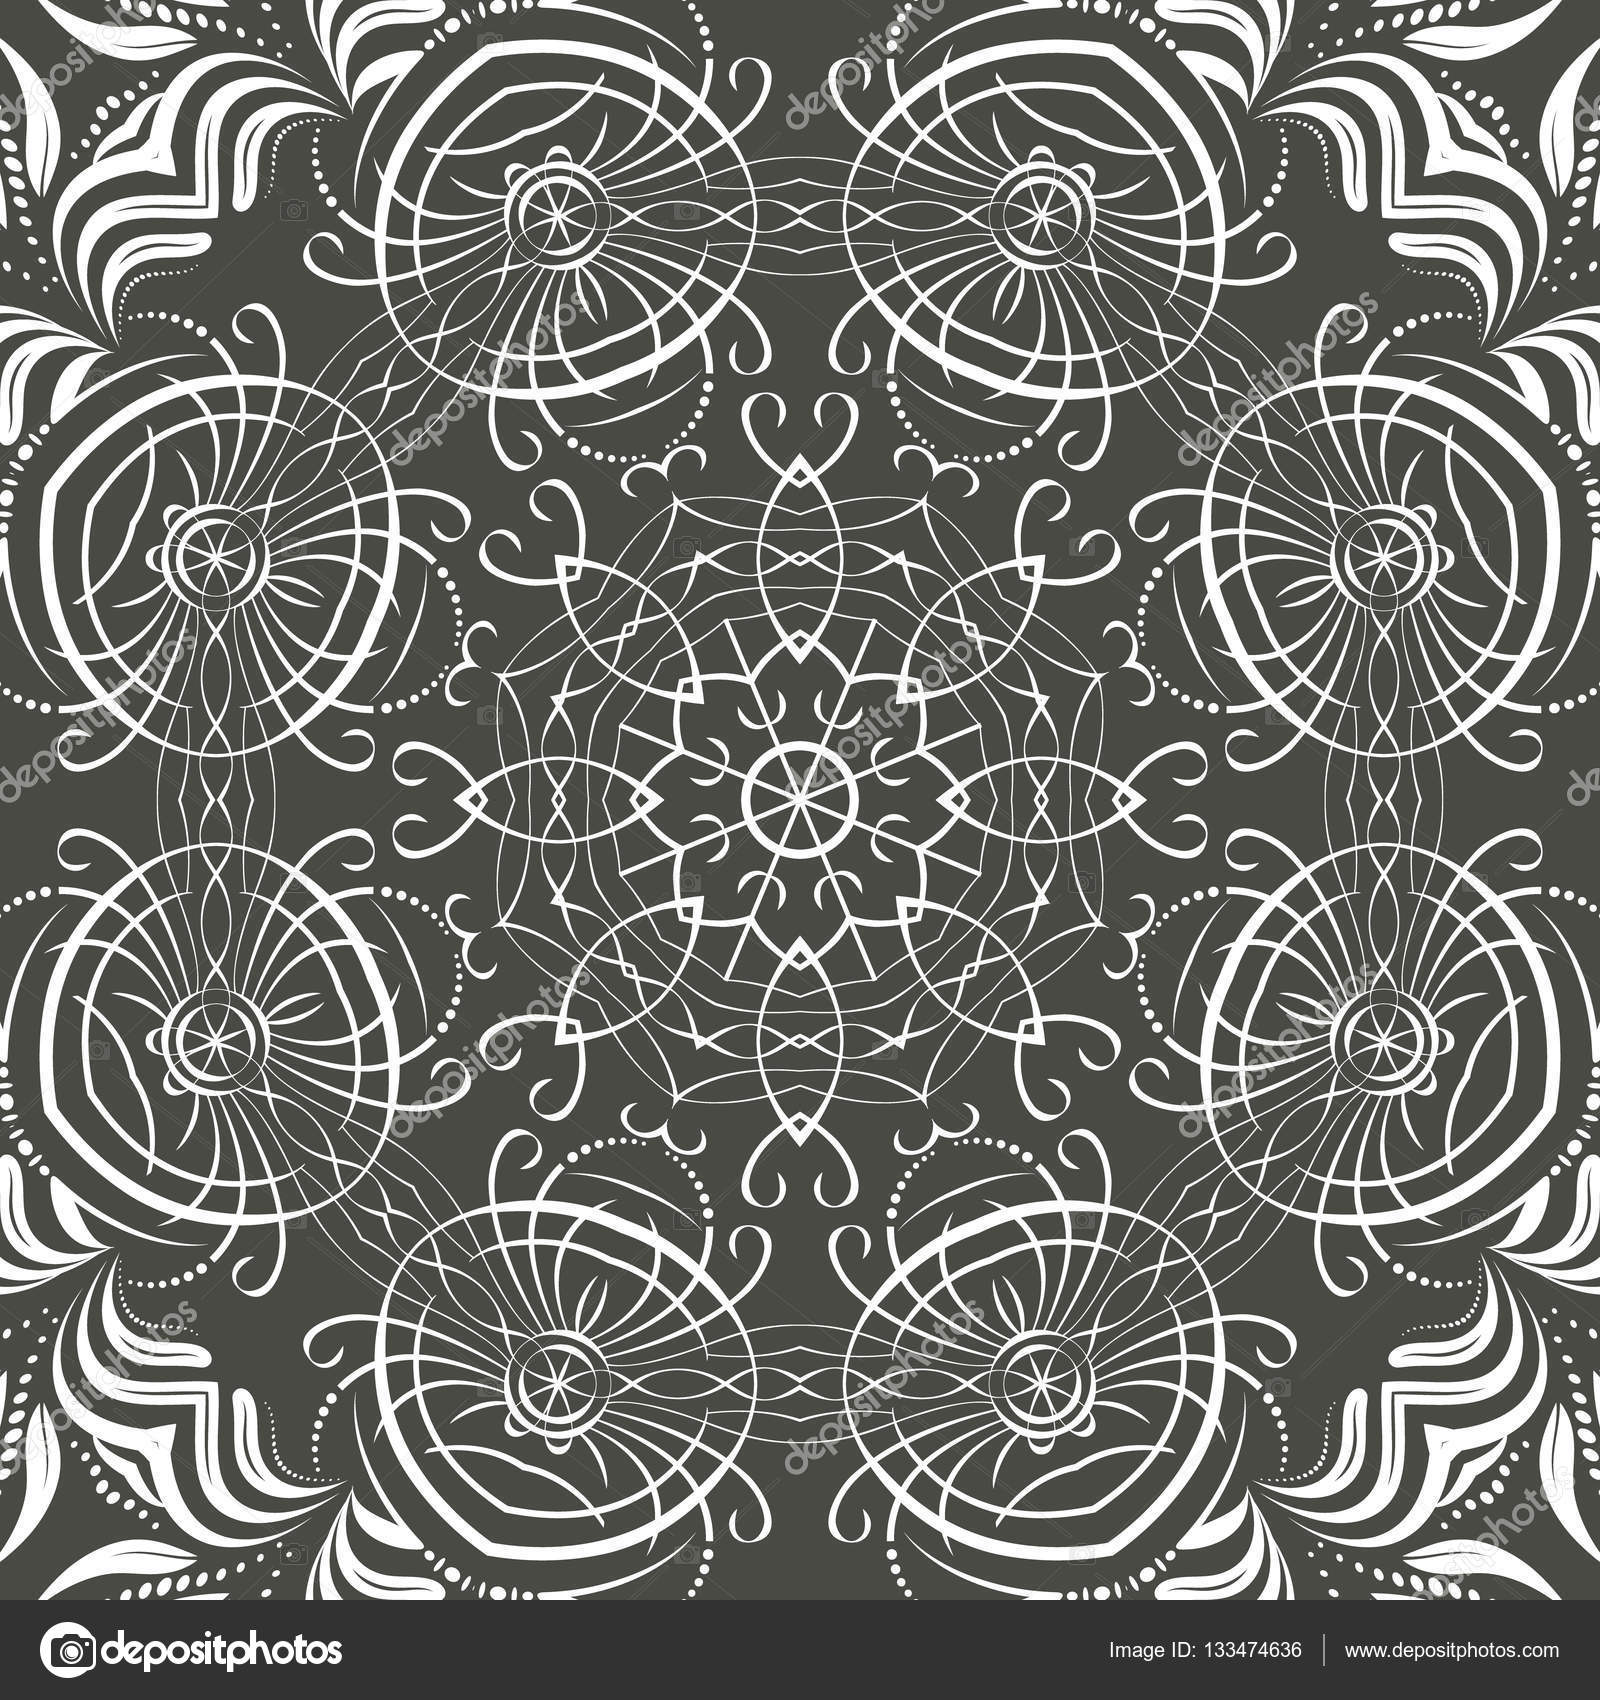 Mandala Seamless Floral Pattern With Flowers And Leaves